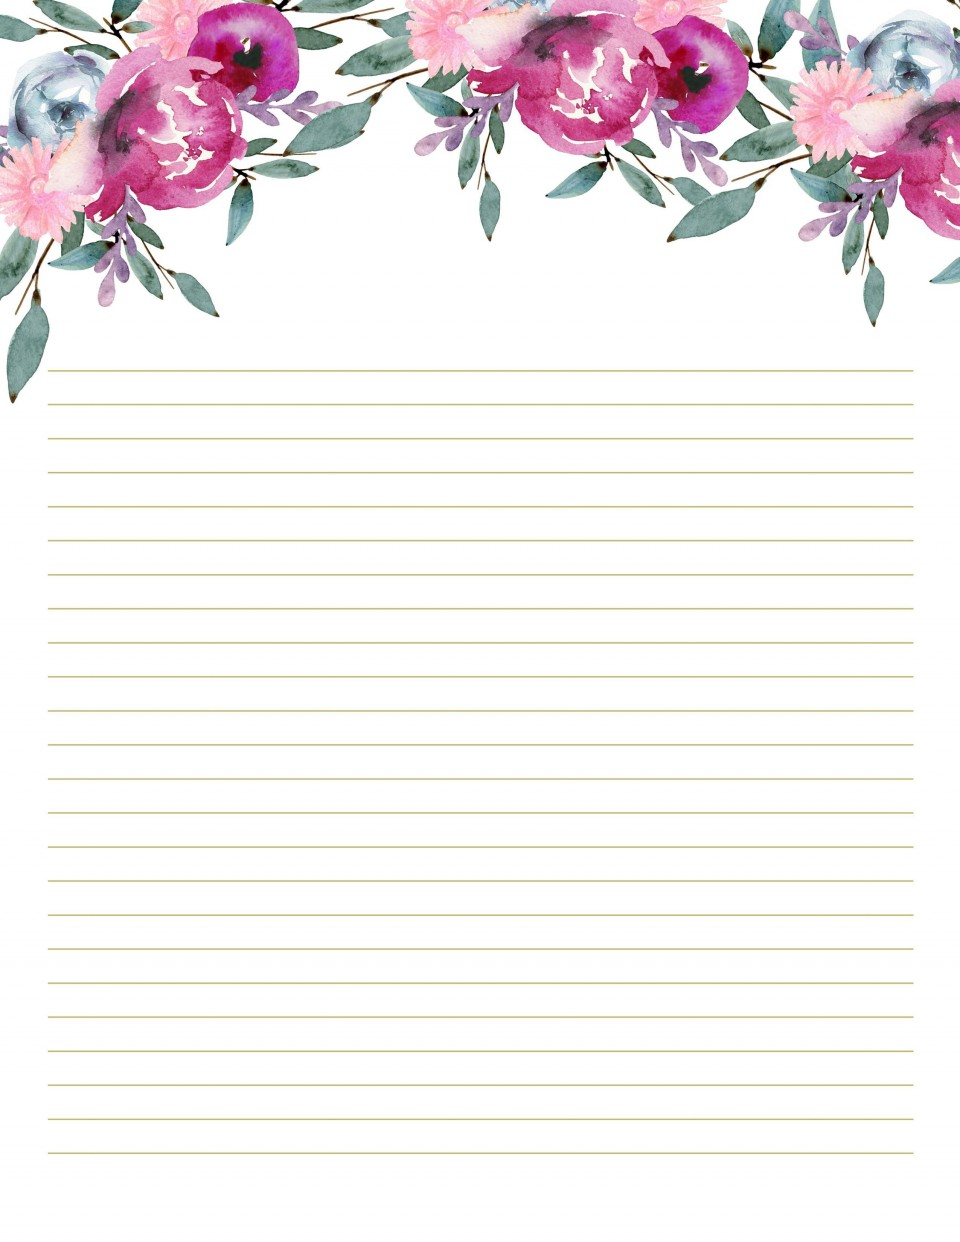 002 Unique Free Printable Stationery Paper Template High Resolution 960